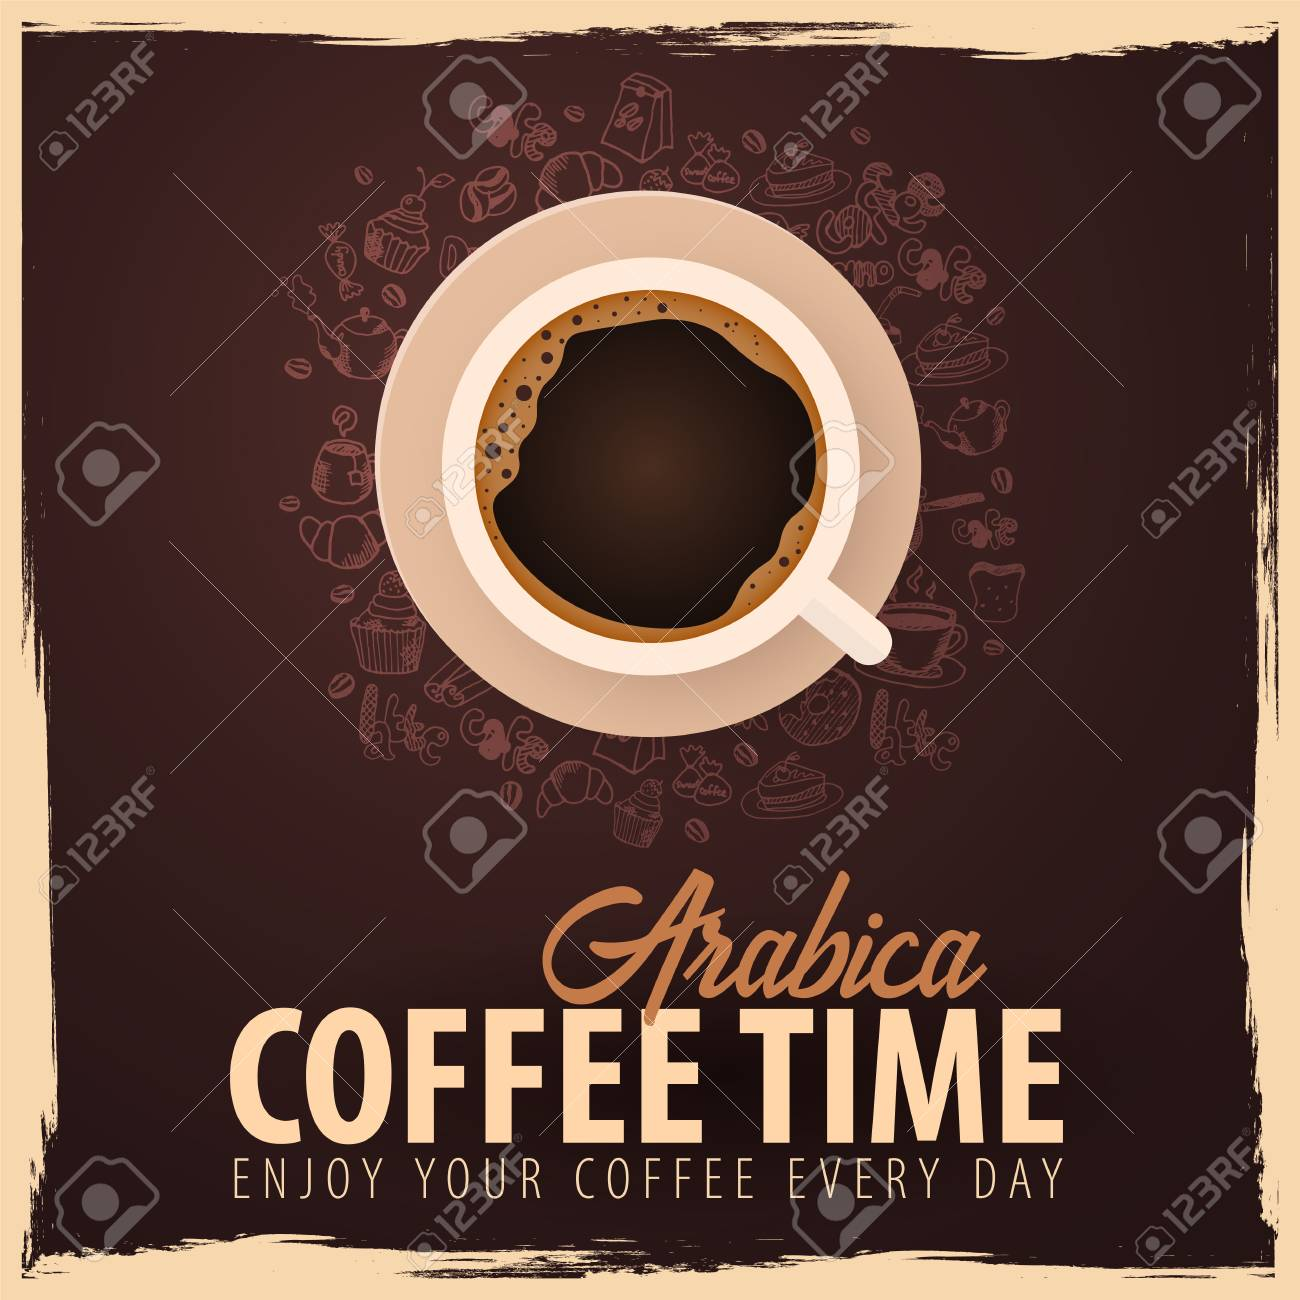 coffee background.html